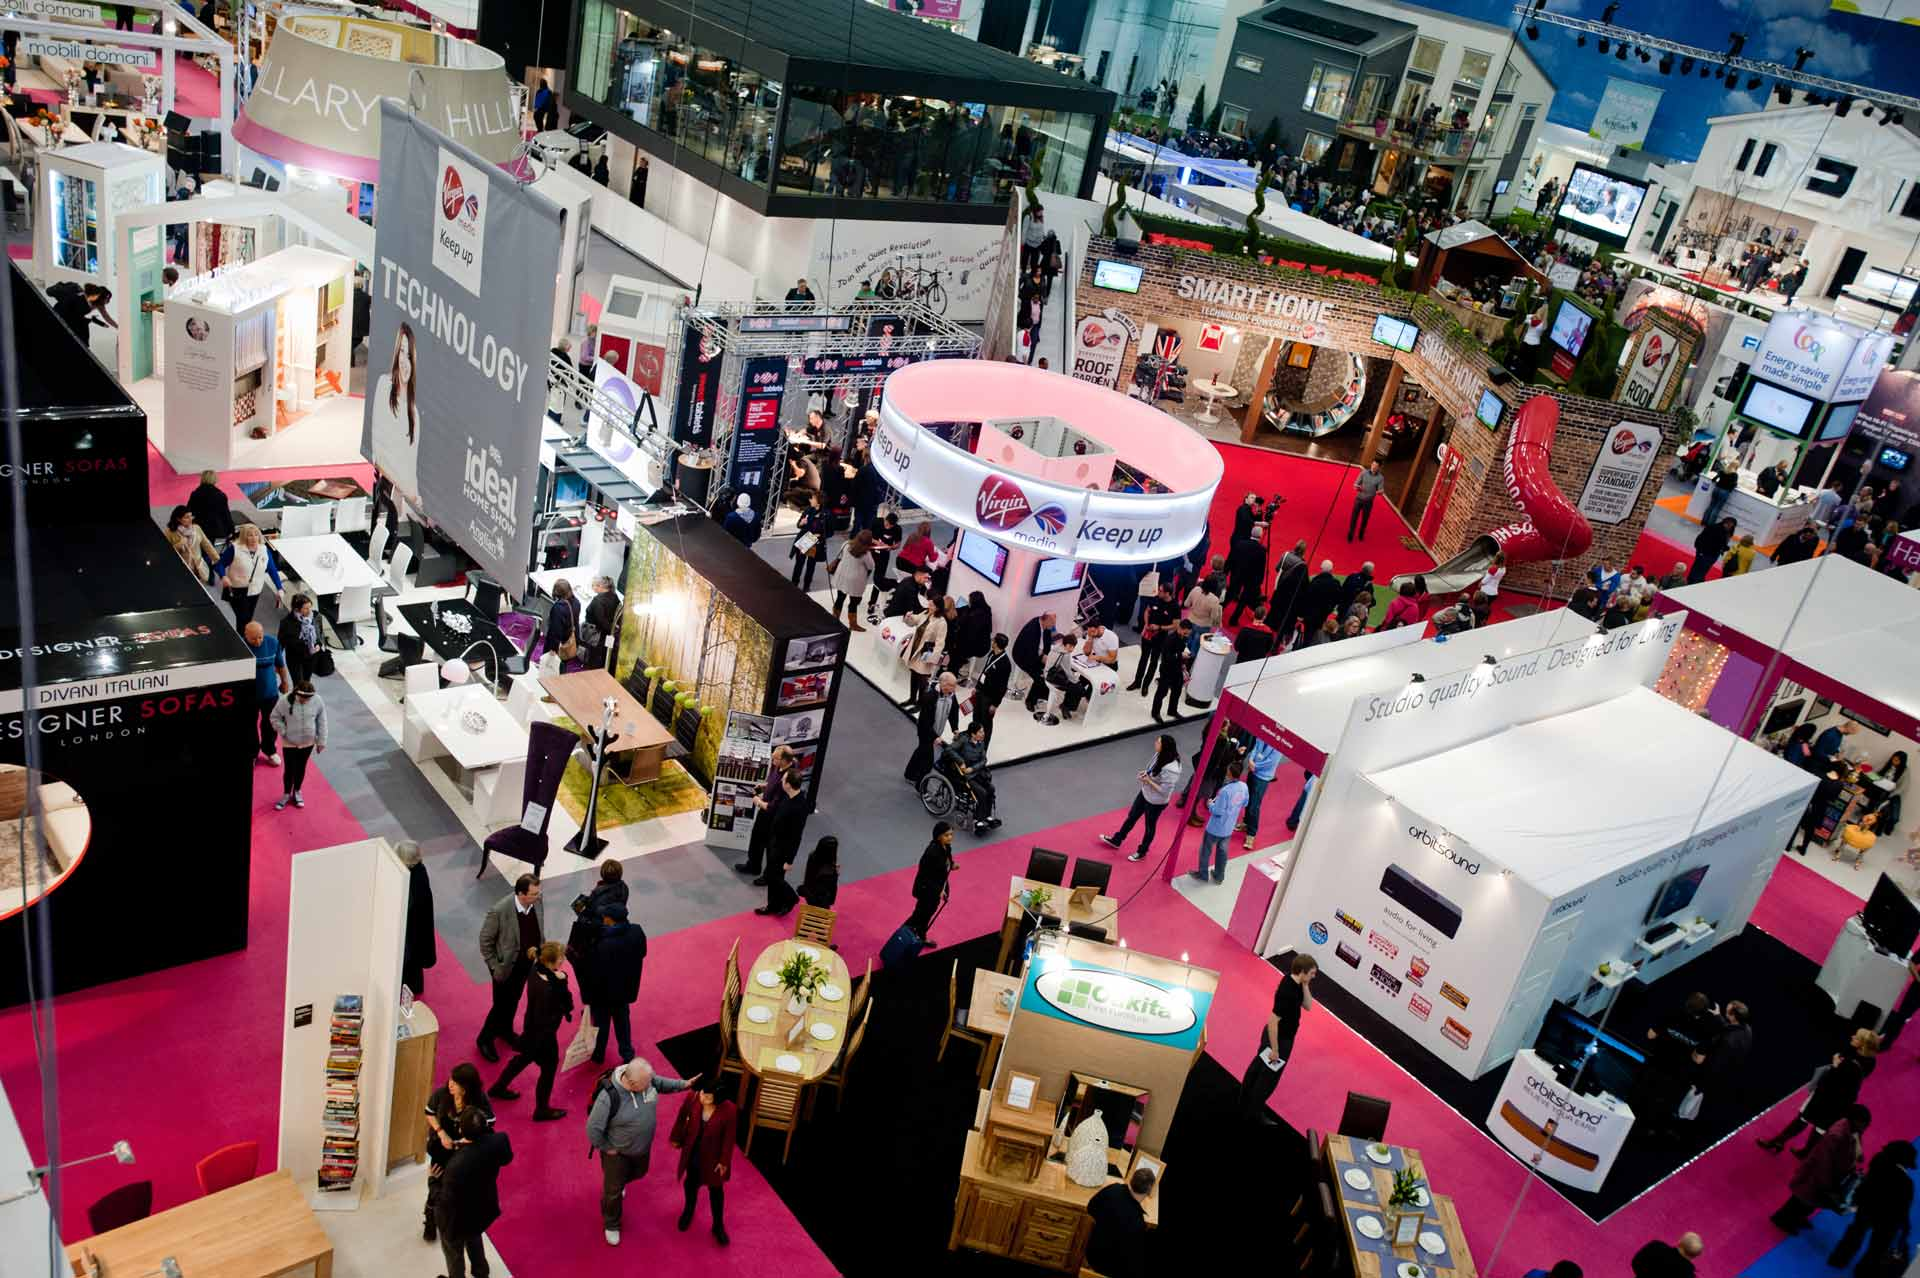 Aerial photo of busy exhibition